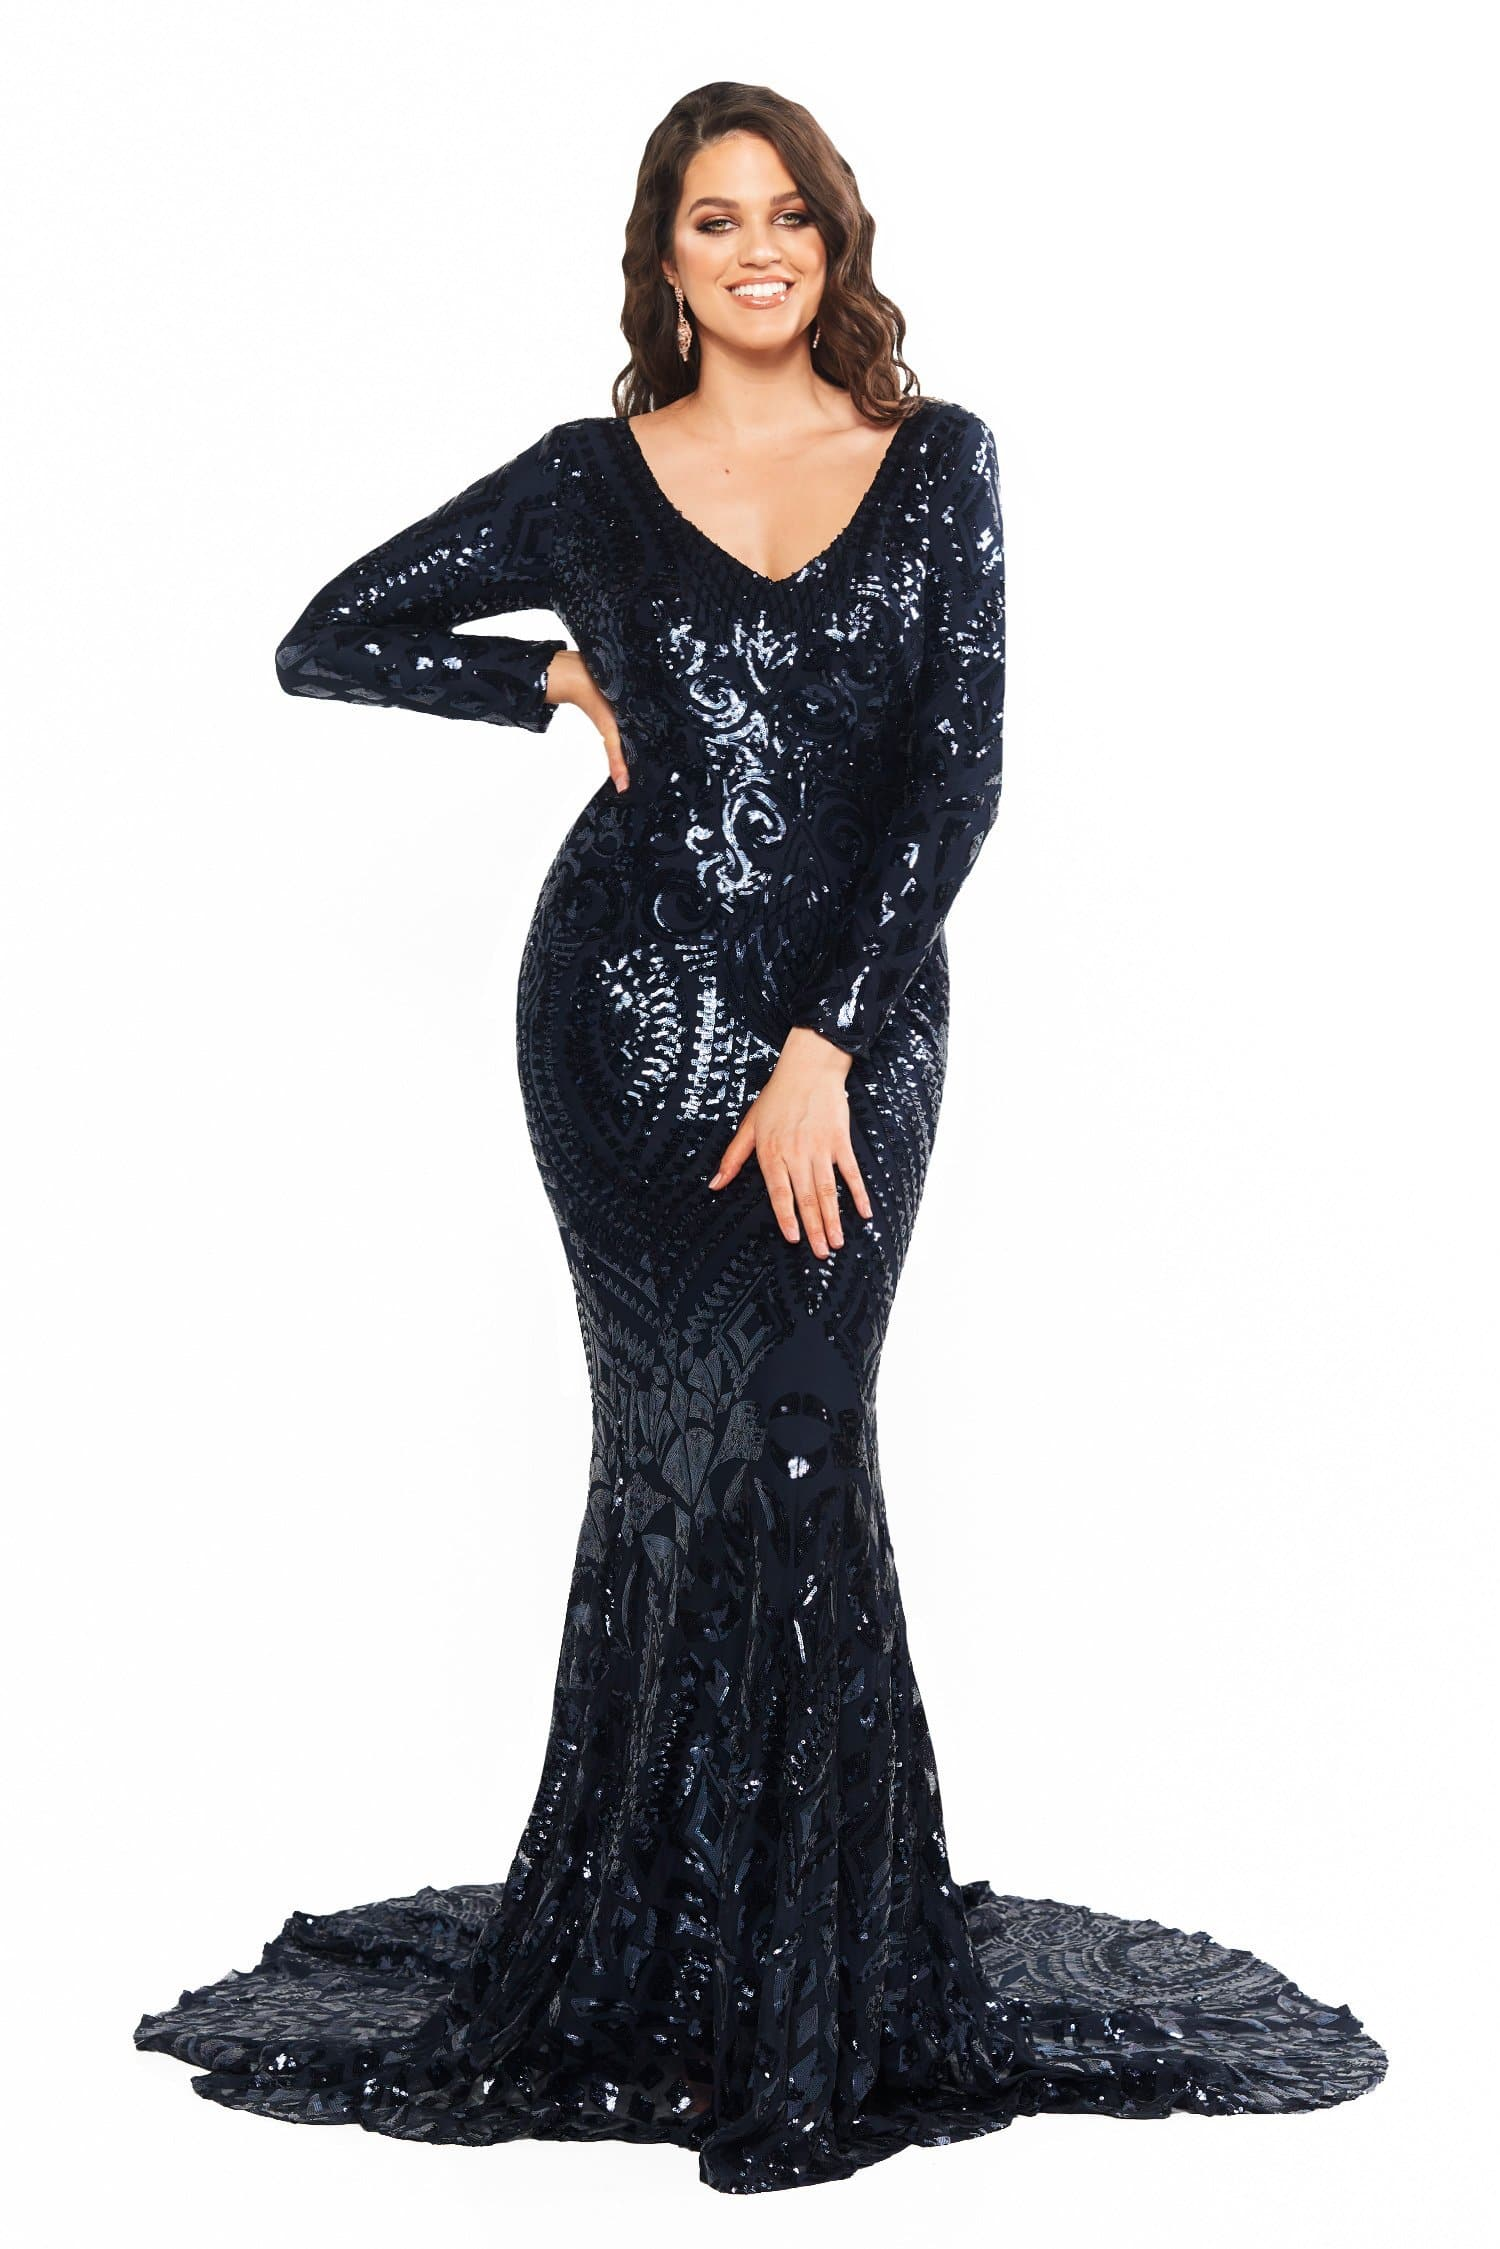 A&N Curve Julieta - Navy Sequin Gown with Long Sleeves & Mermaid Train